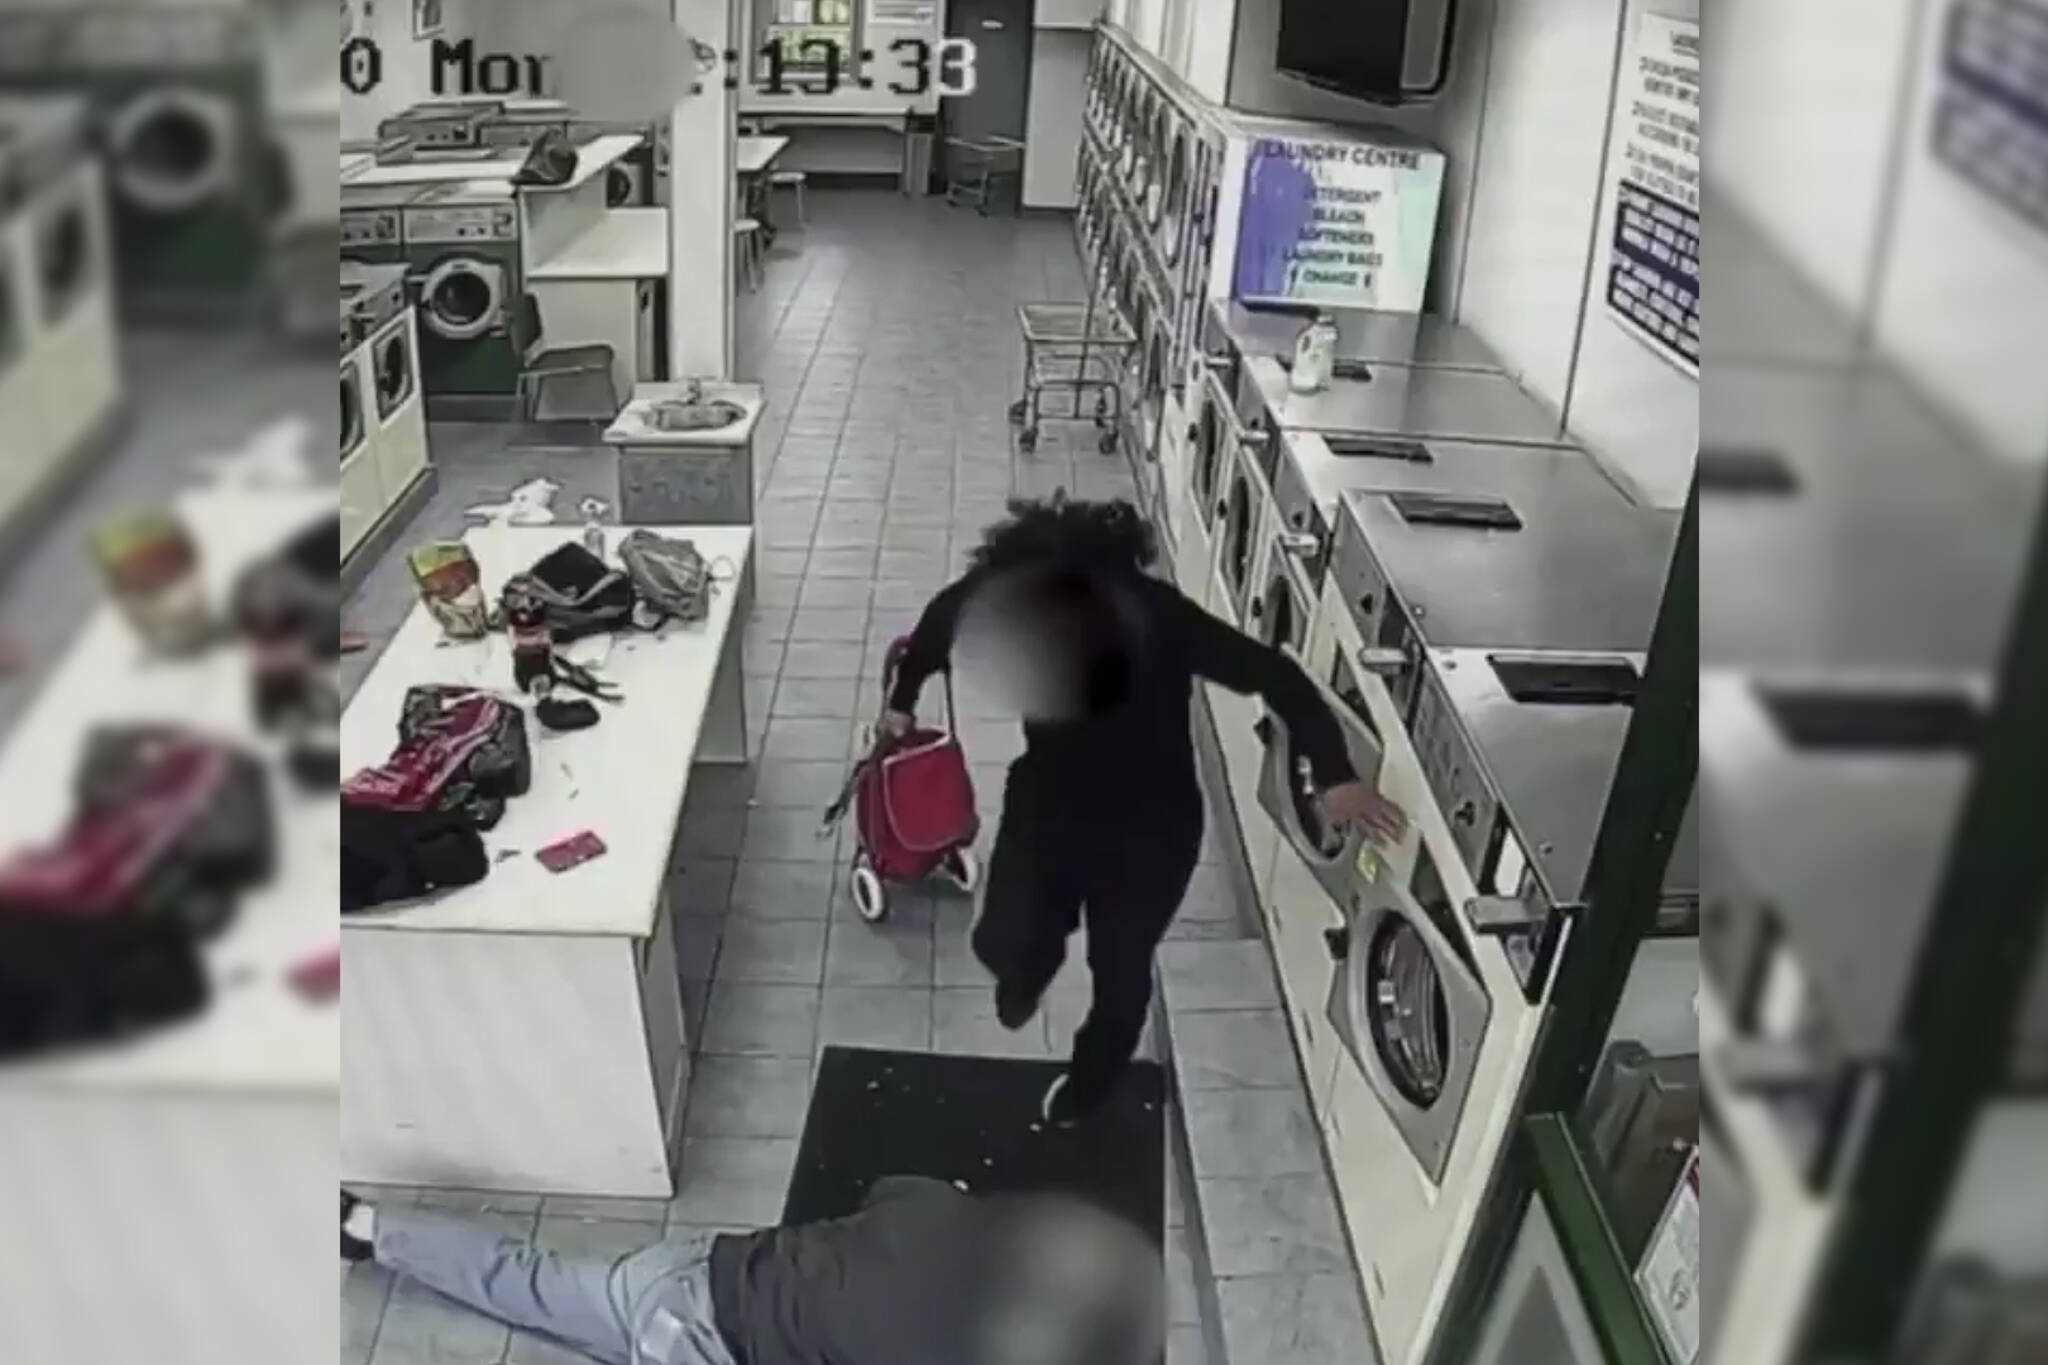 toronto laundromat fight